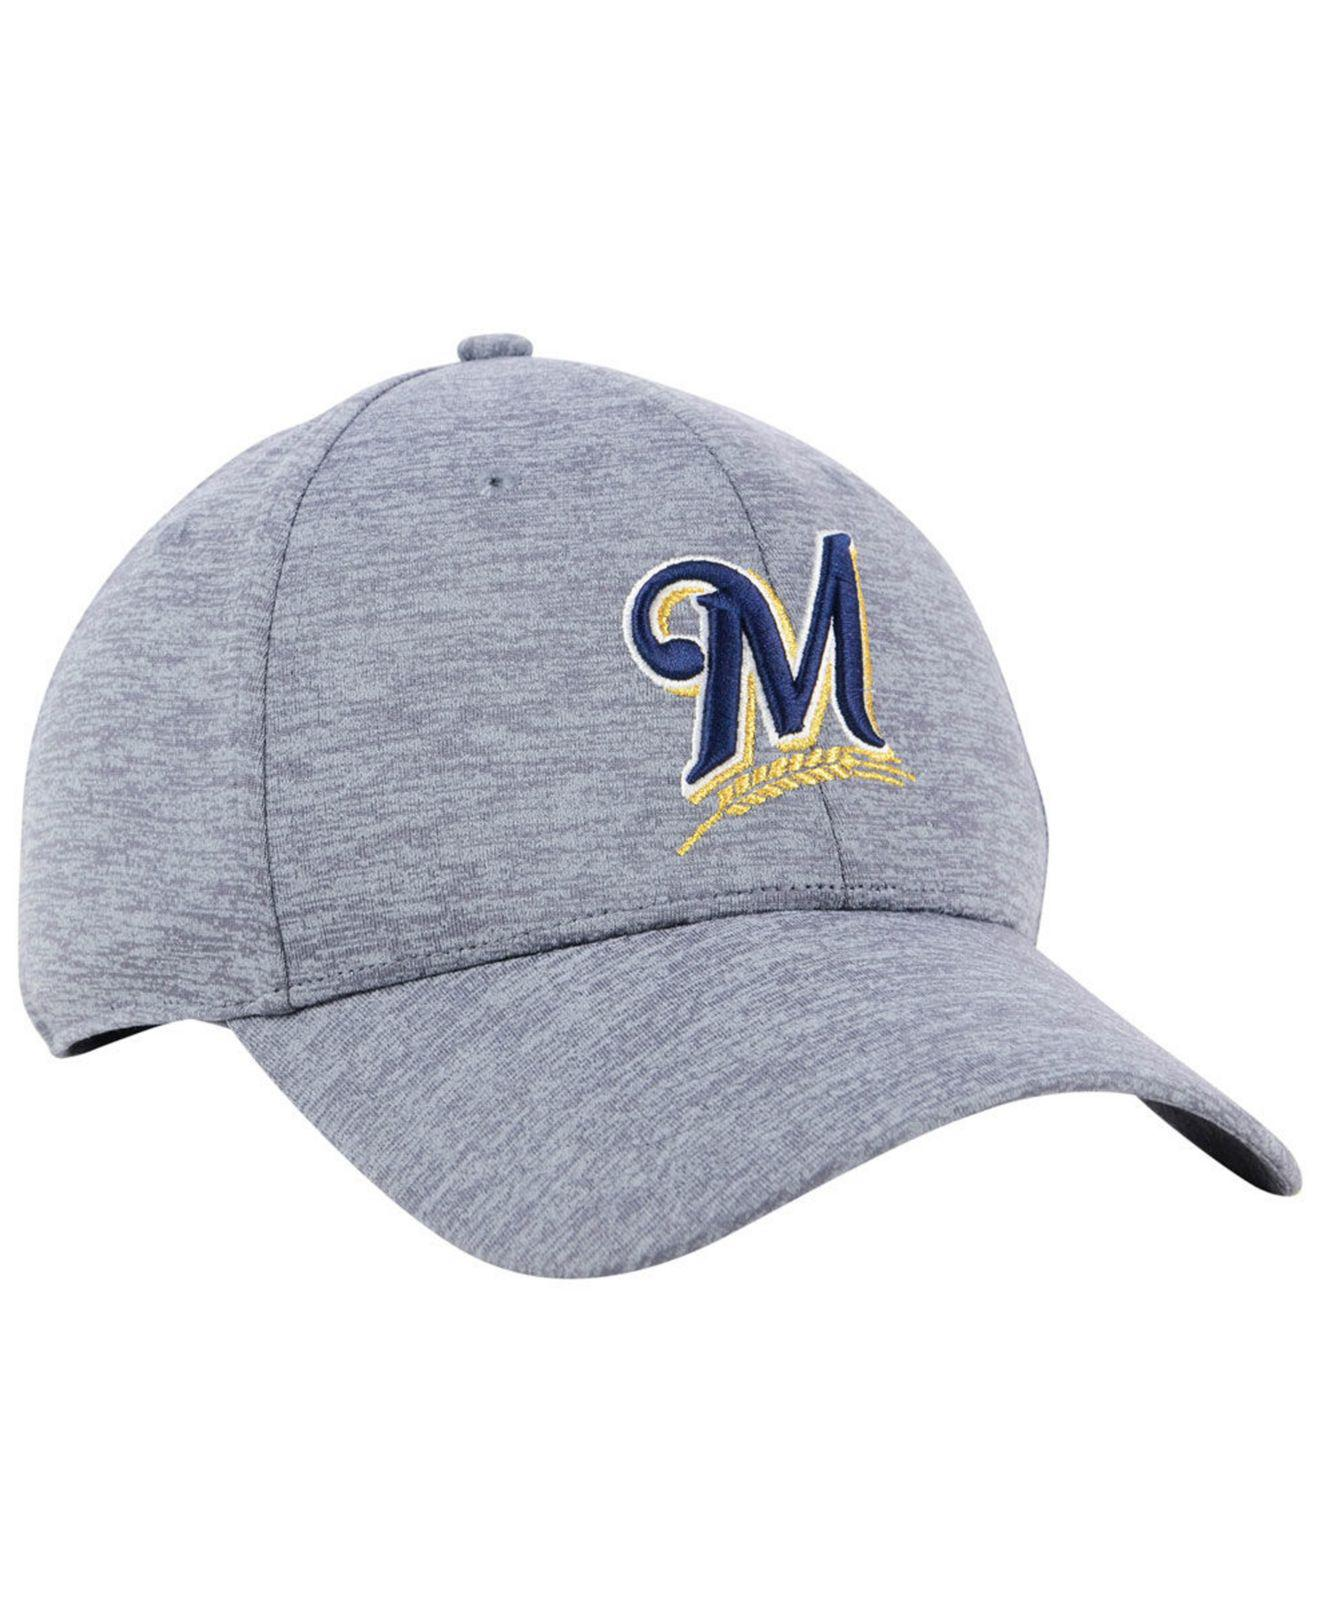 54ebcc49857 Under Armour - Gray Milwaukee Brewers Twist Closer Cap for Men - Lyst. View  fullscreen